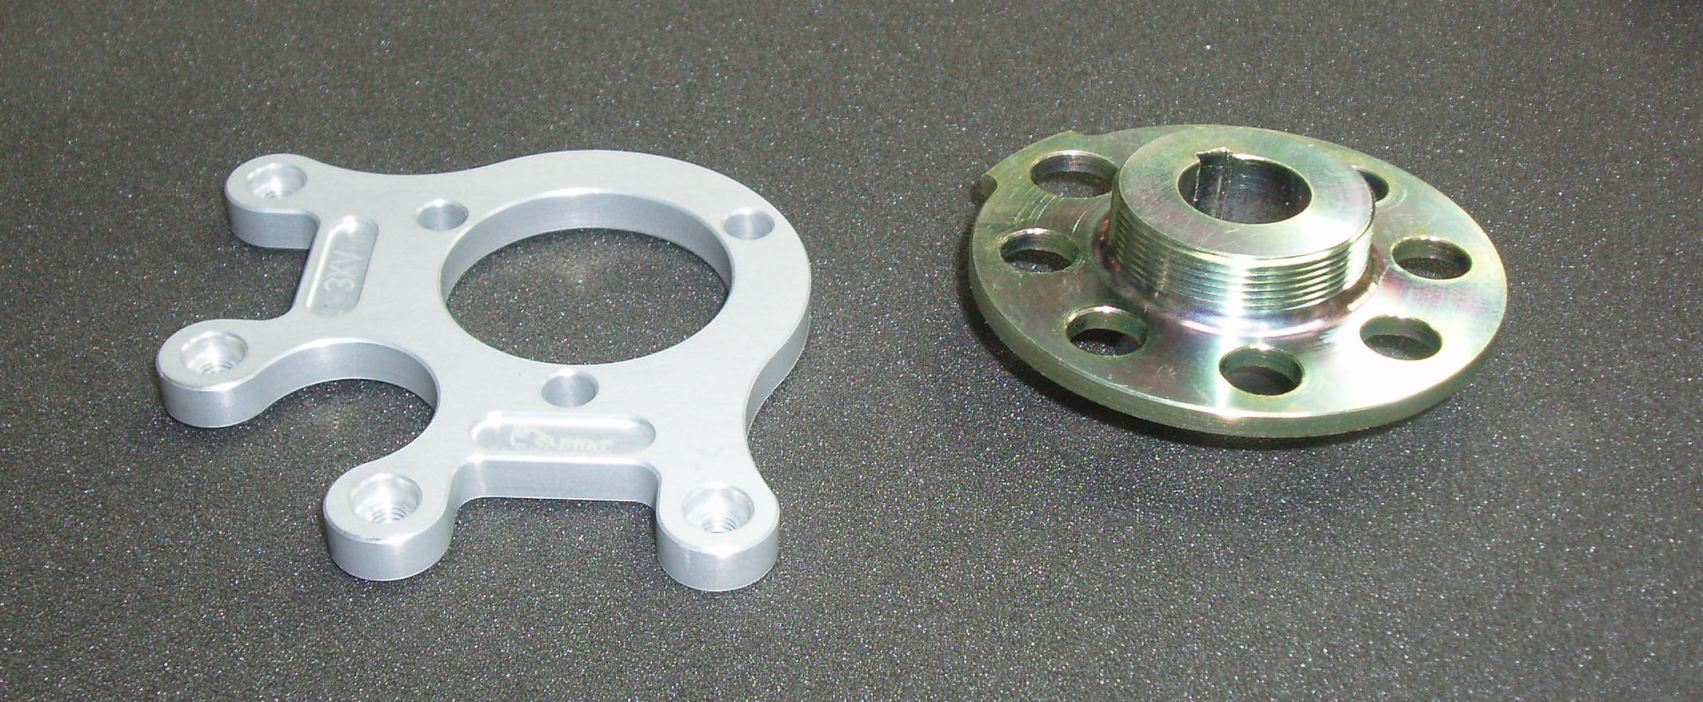 TZR 250 3XV Race Rotor and plate - BDK